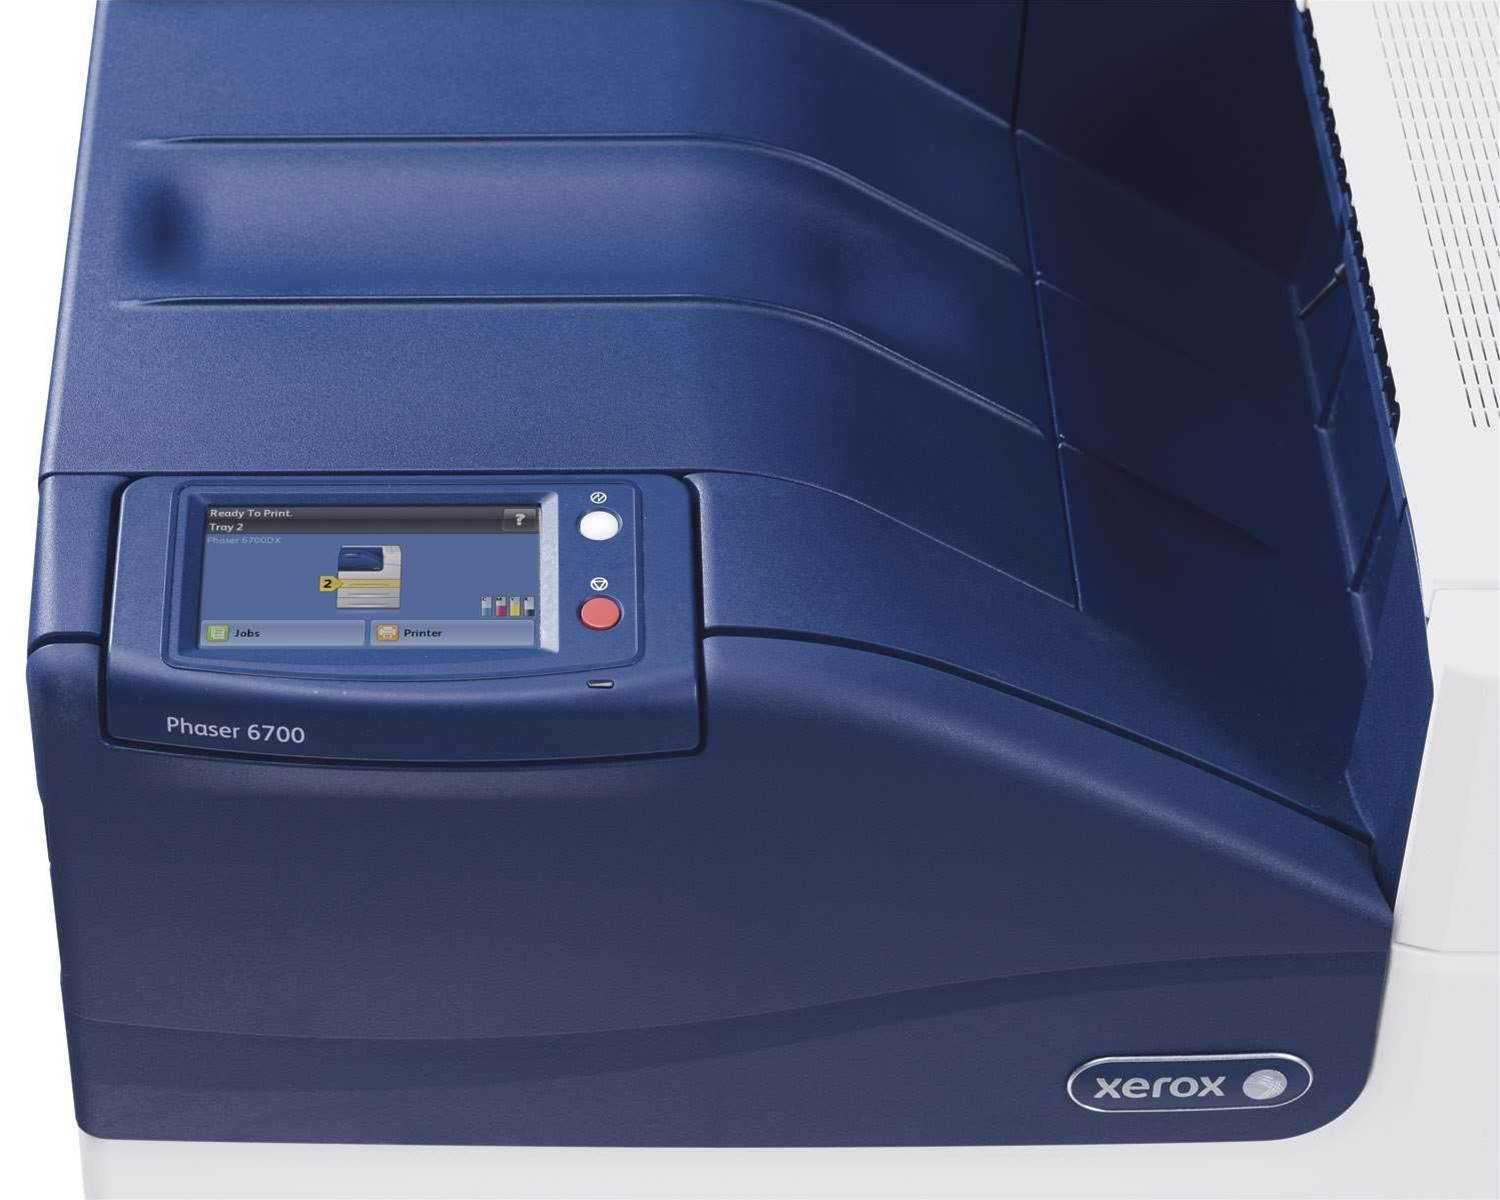 Also features a 4.3in colour touch screen and colour matching technology seen in the Phaser 7800.